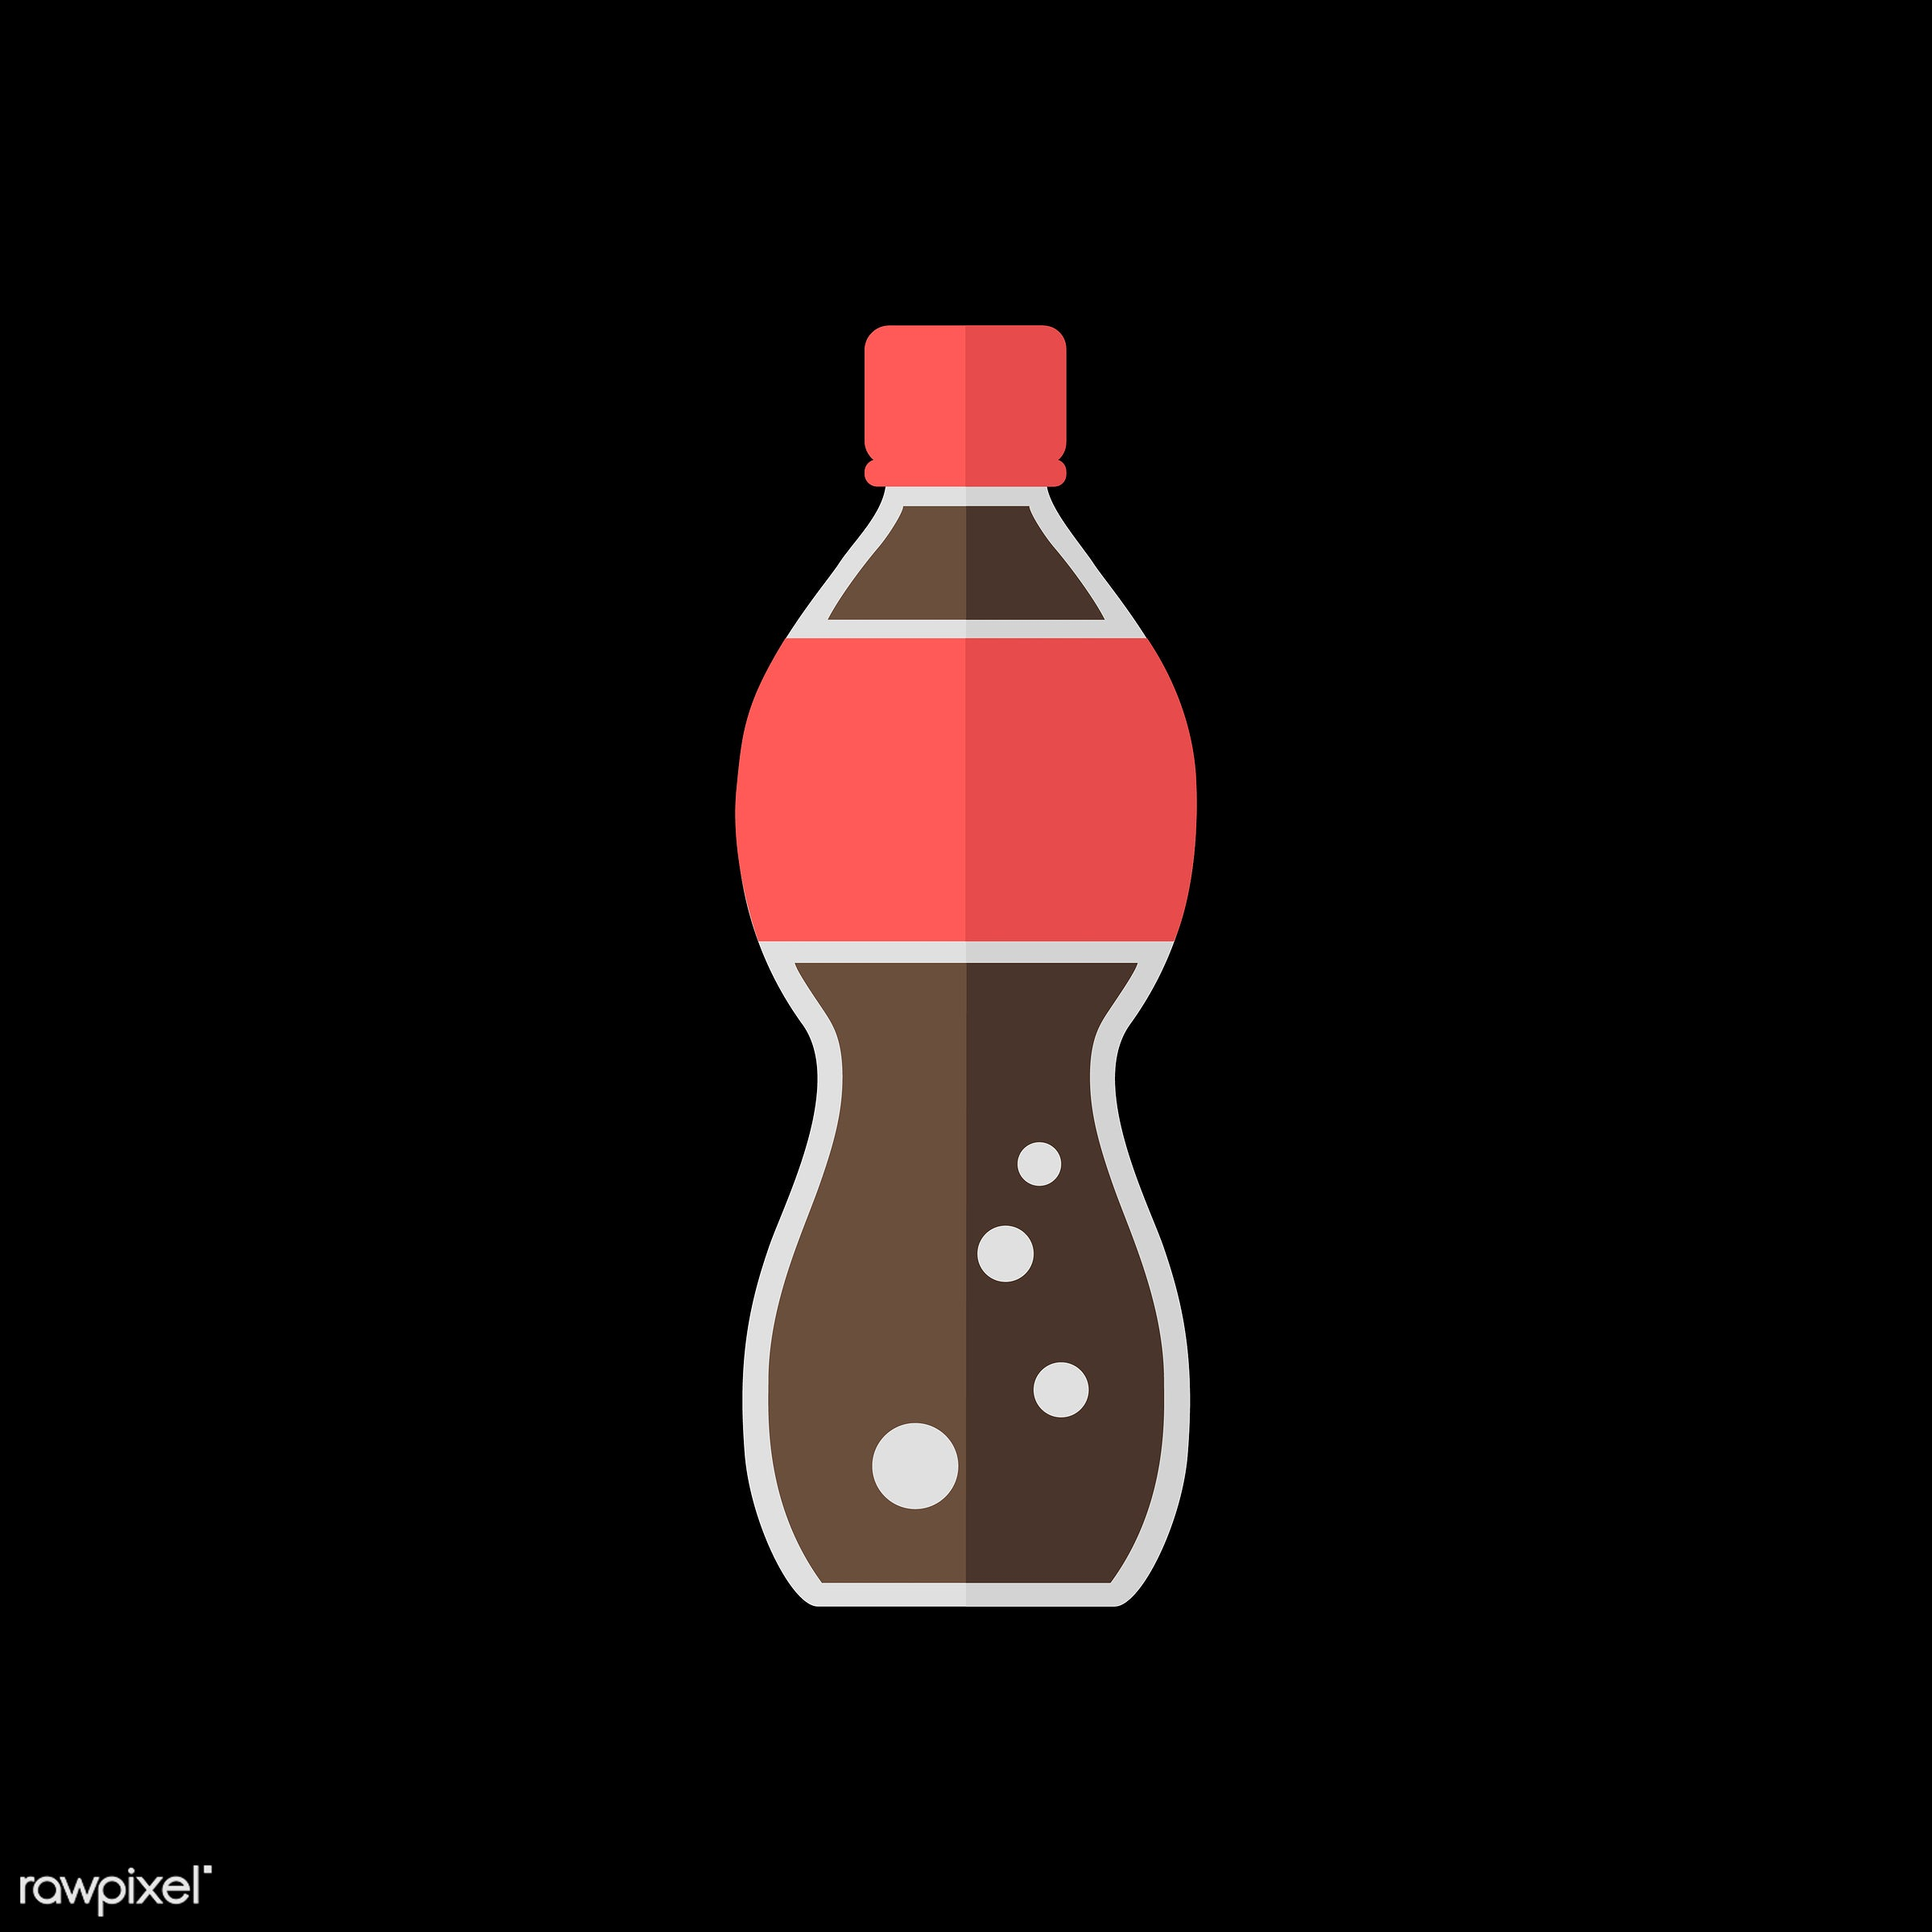 Soda bottle vector - vector, graphic, illustration, icon, symbol, colorful, cute, cola, soda, red, brown, black, drink,...